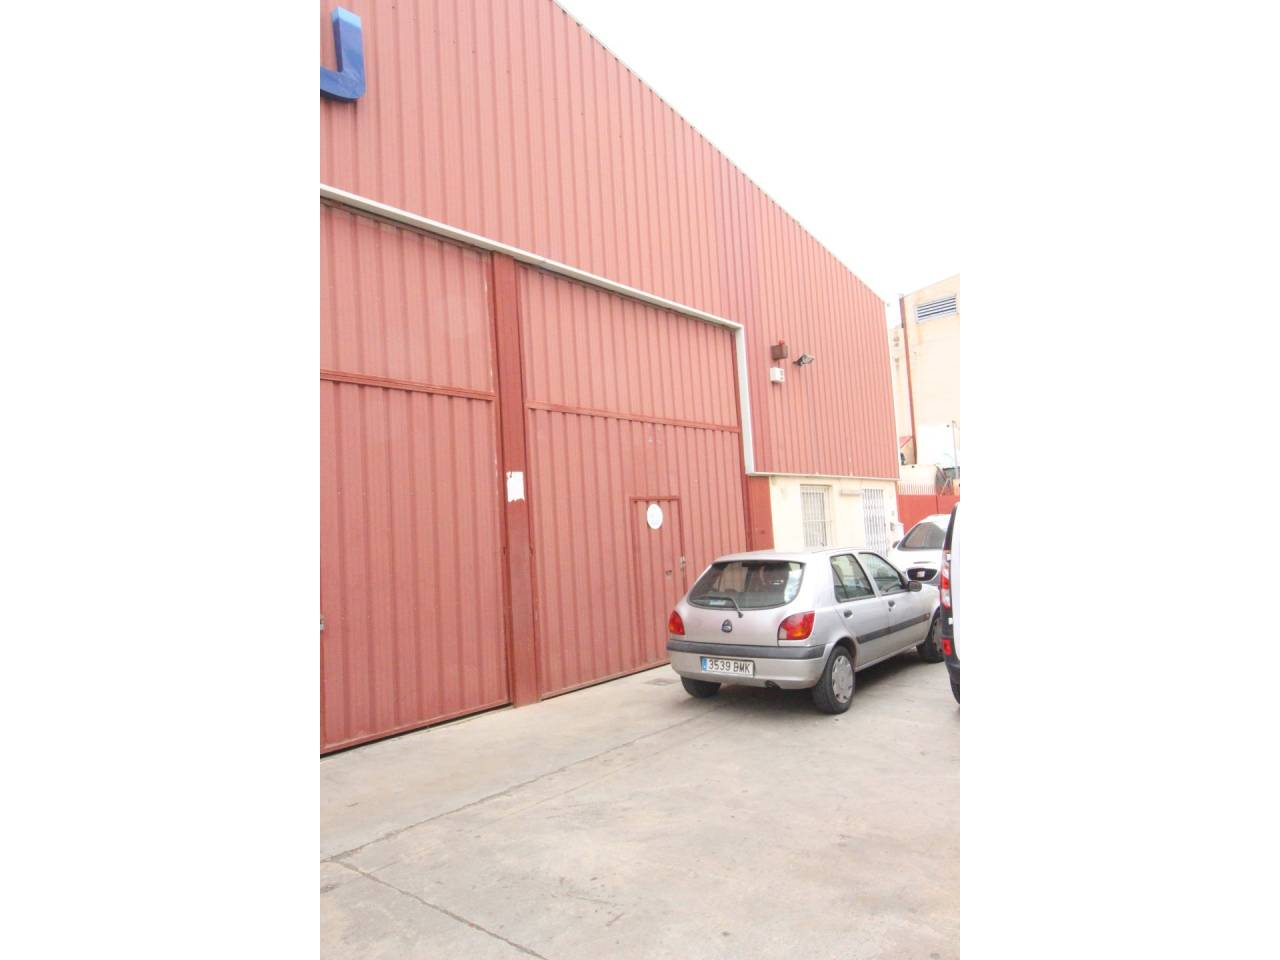 Capannone industriale  Calle celleters. Superficie total 283 m², nave industrial superficie útil 283 m²,